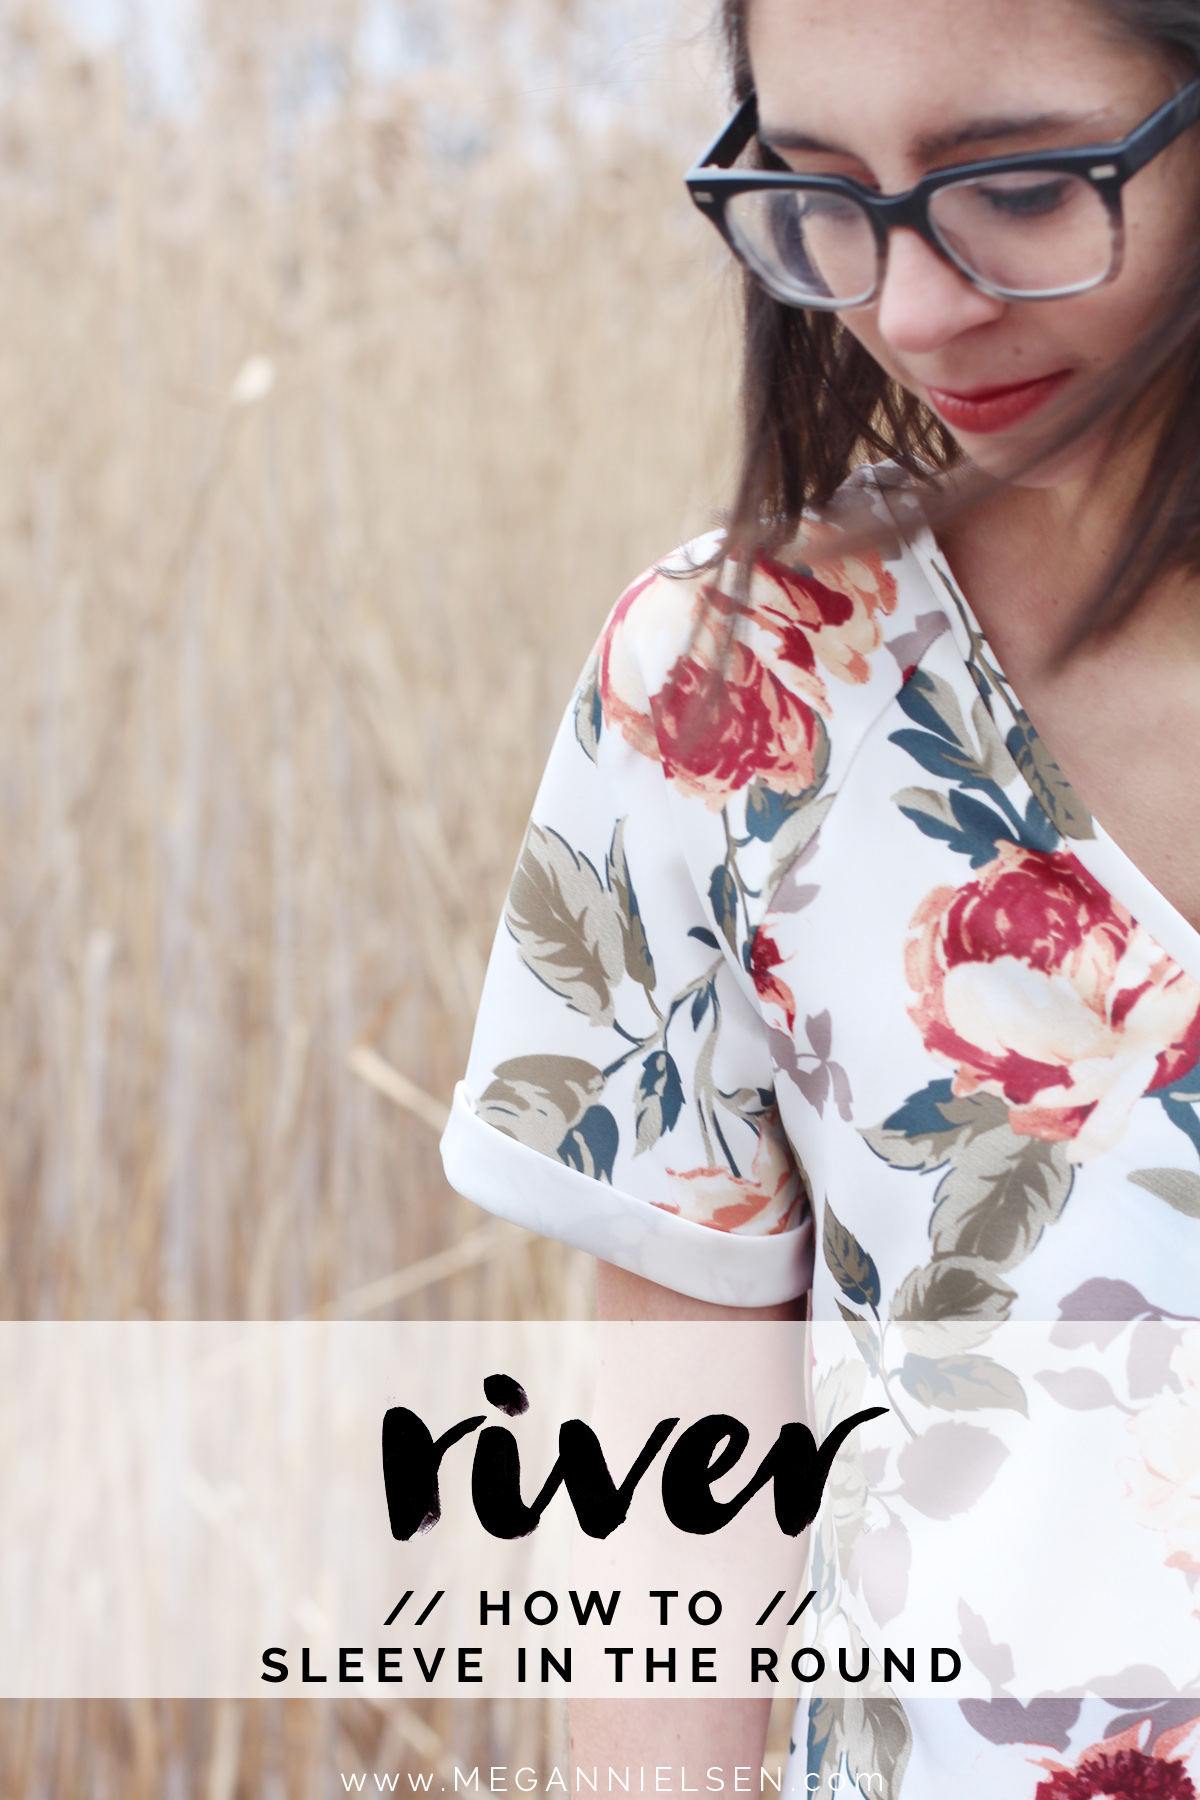 raglan sleeve in the round on the River pattern // tutorial on Megan Nielsen Design Diary